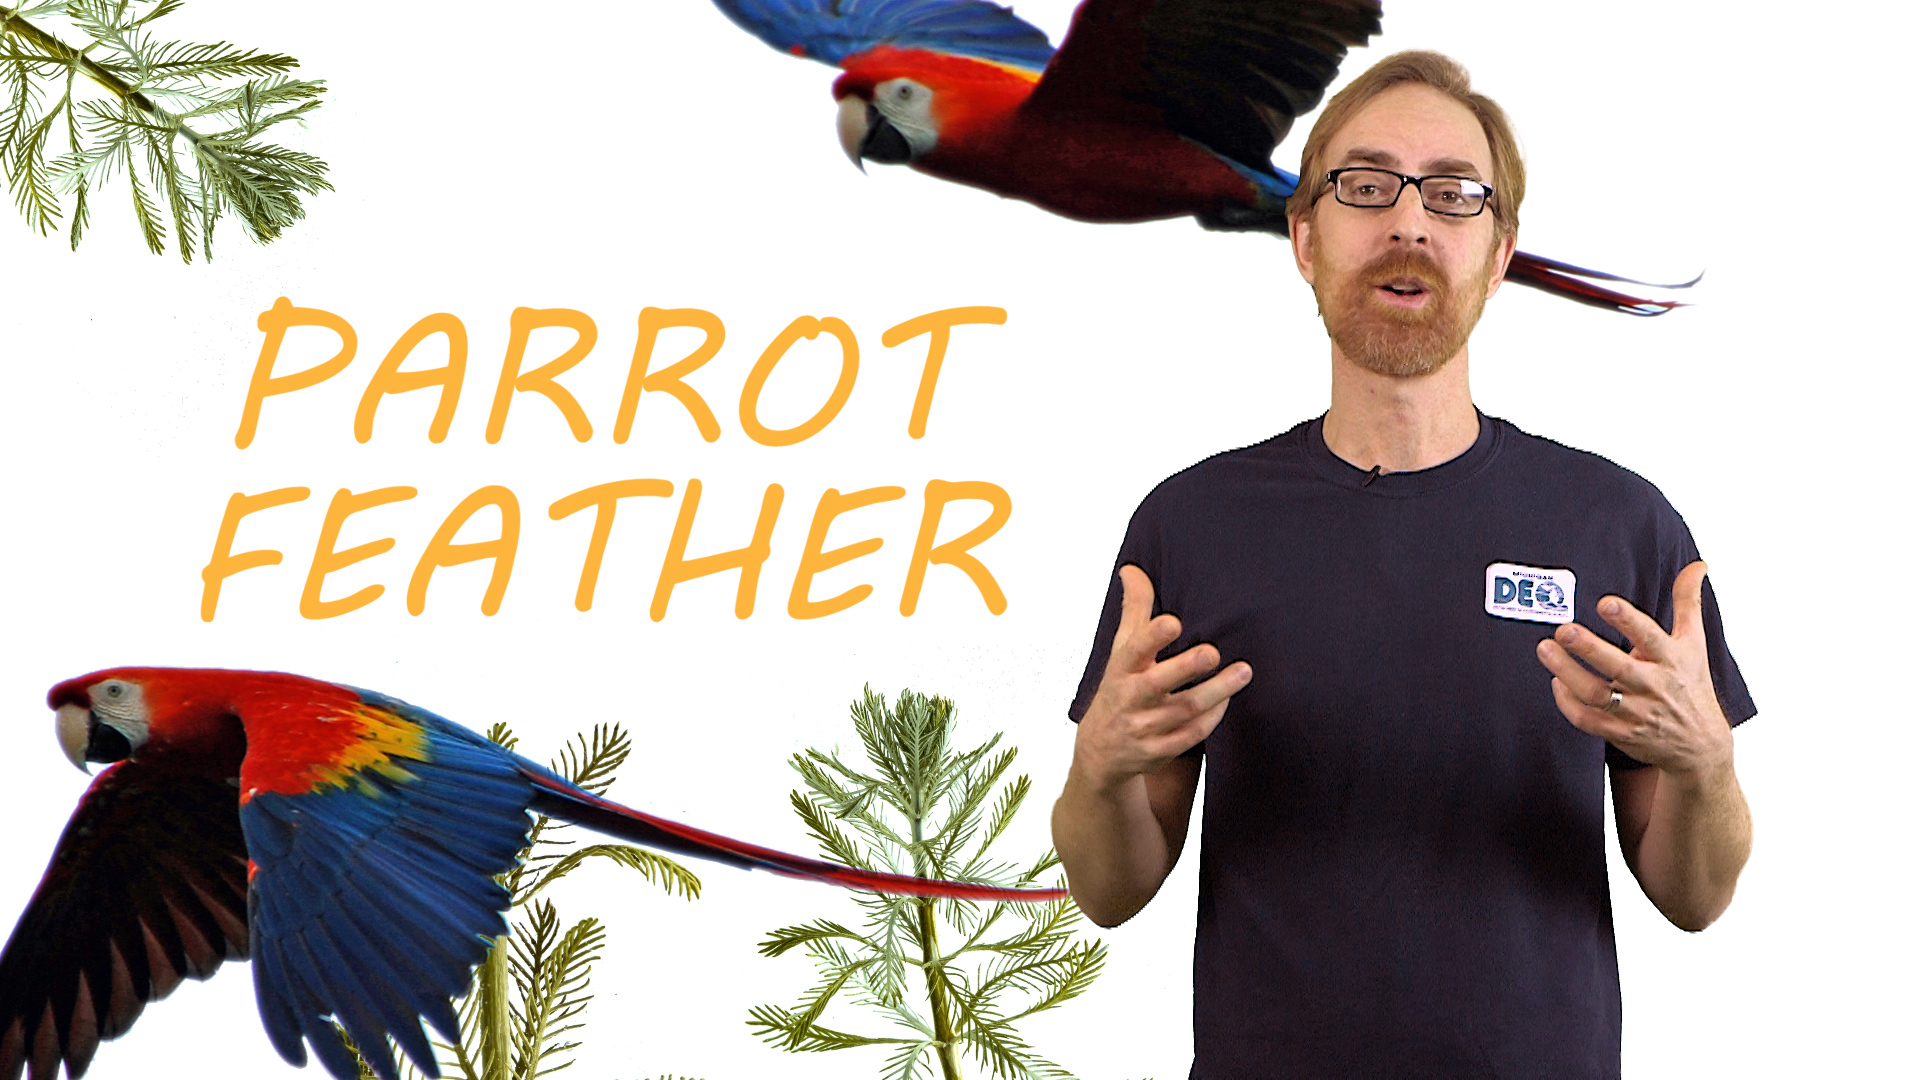 Parrot feather video